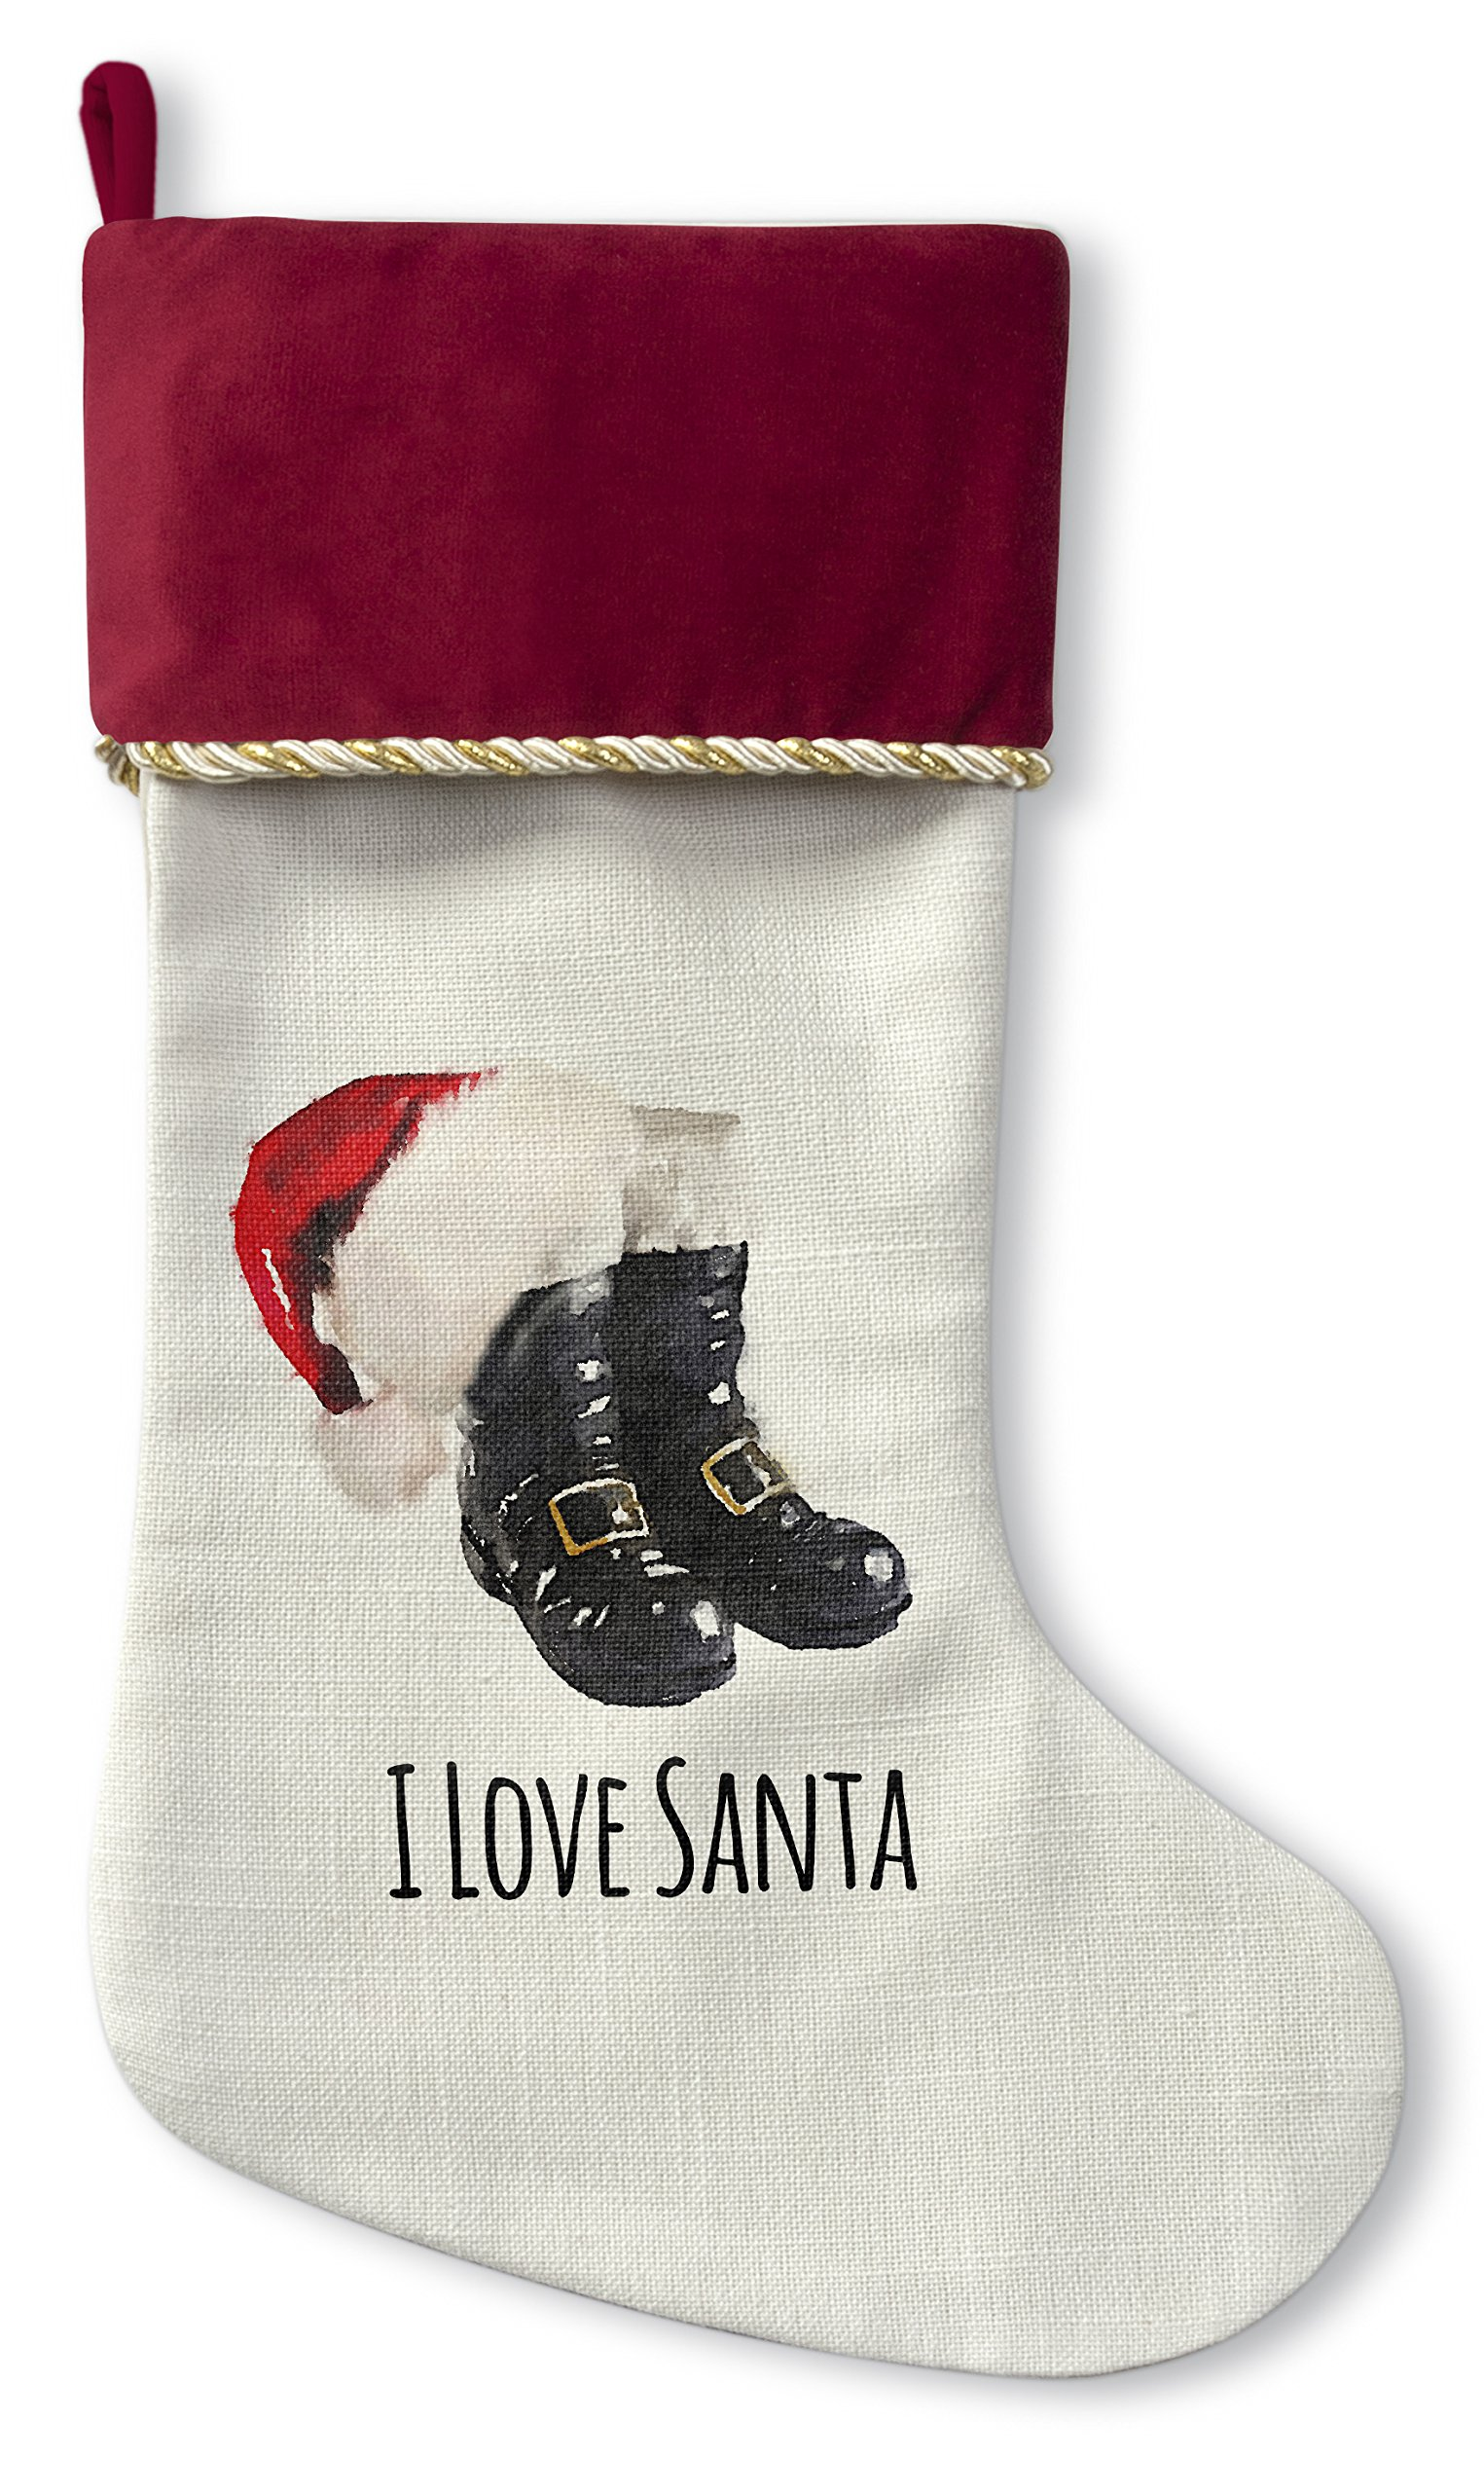 KAVKA DESIGNS I Love Santa Christmas Stocking, (White/Black/Red) - TRADITIONS Collection, Size: 12.5x21 - (TELAVC1051CSTR)